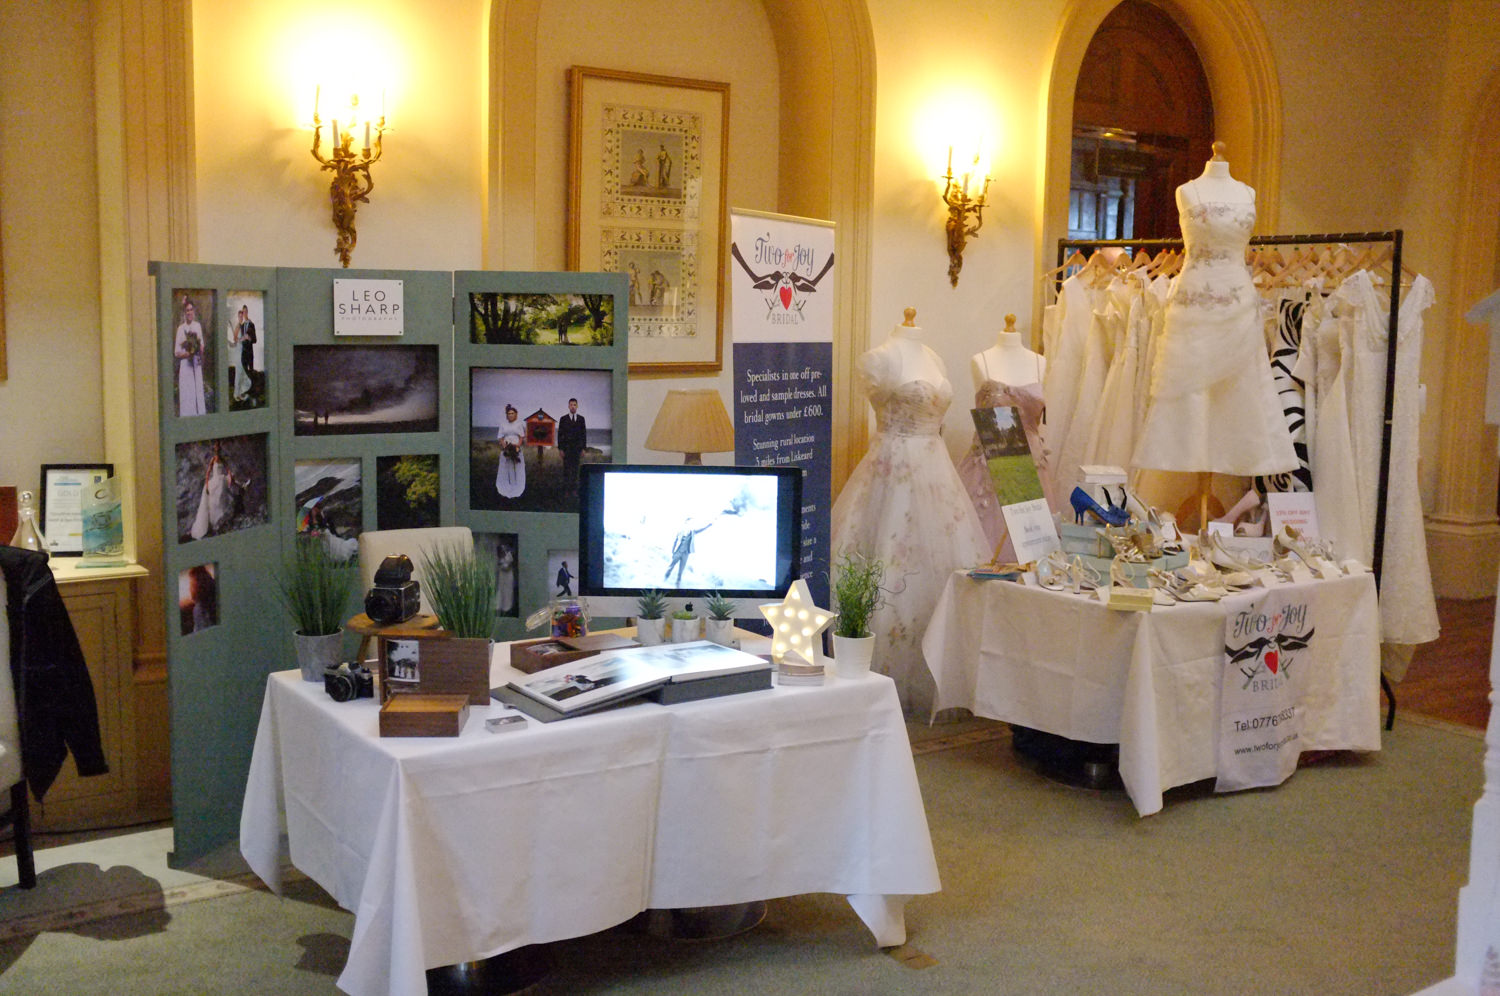 Leo Sharp Photography stand at Trenython manor Wedding Fair